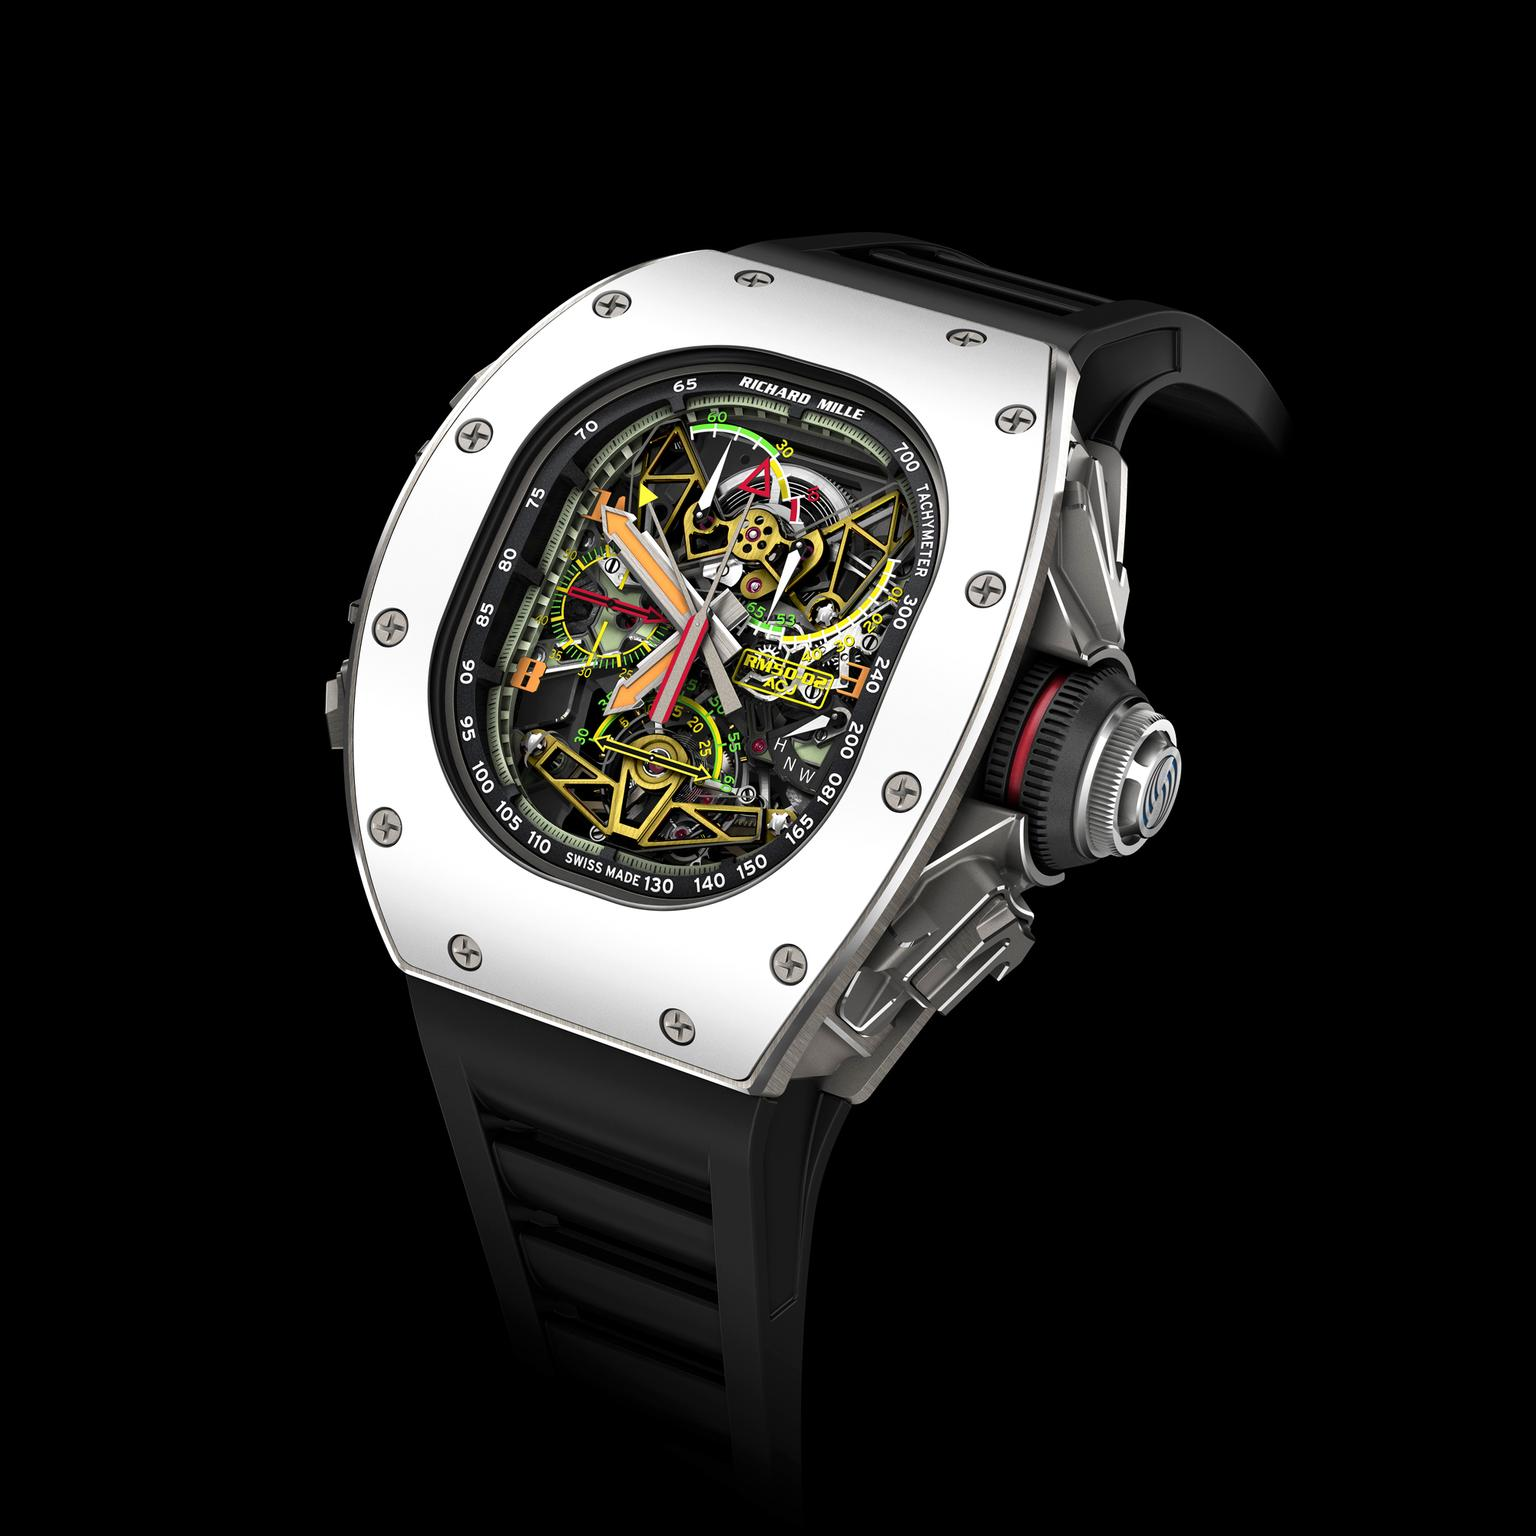 Richard Mille RM 50-02 ACJ Tourbillon Split Seconds Chronograph